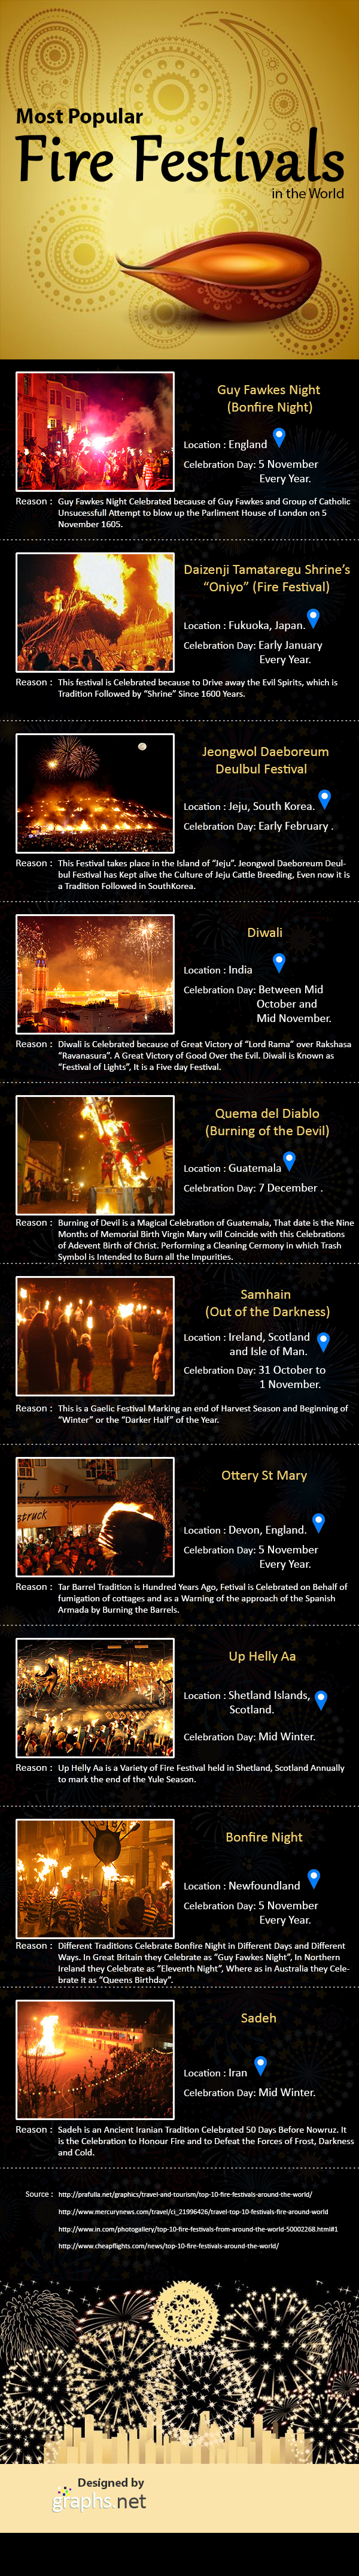 Most Popular Fire Festivals in the World